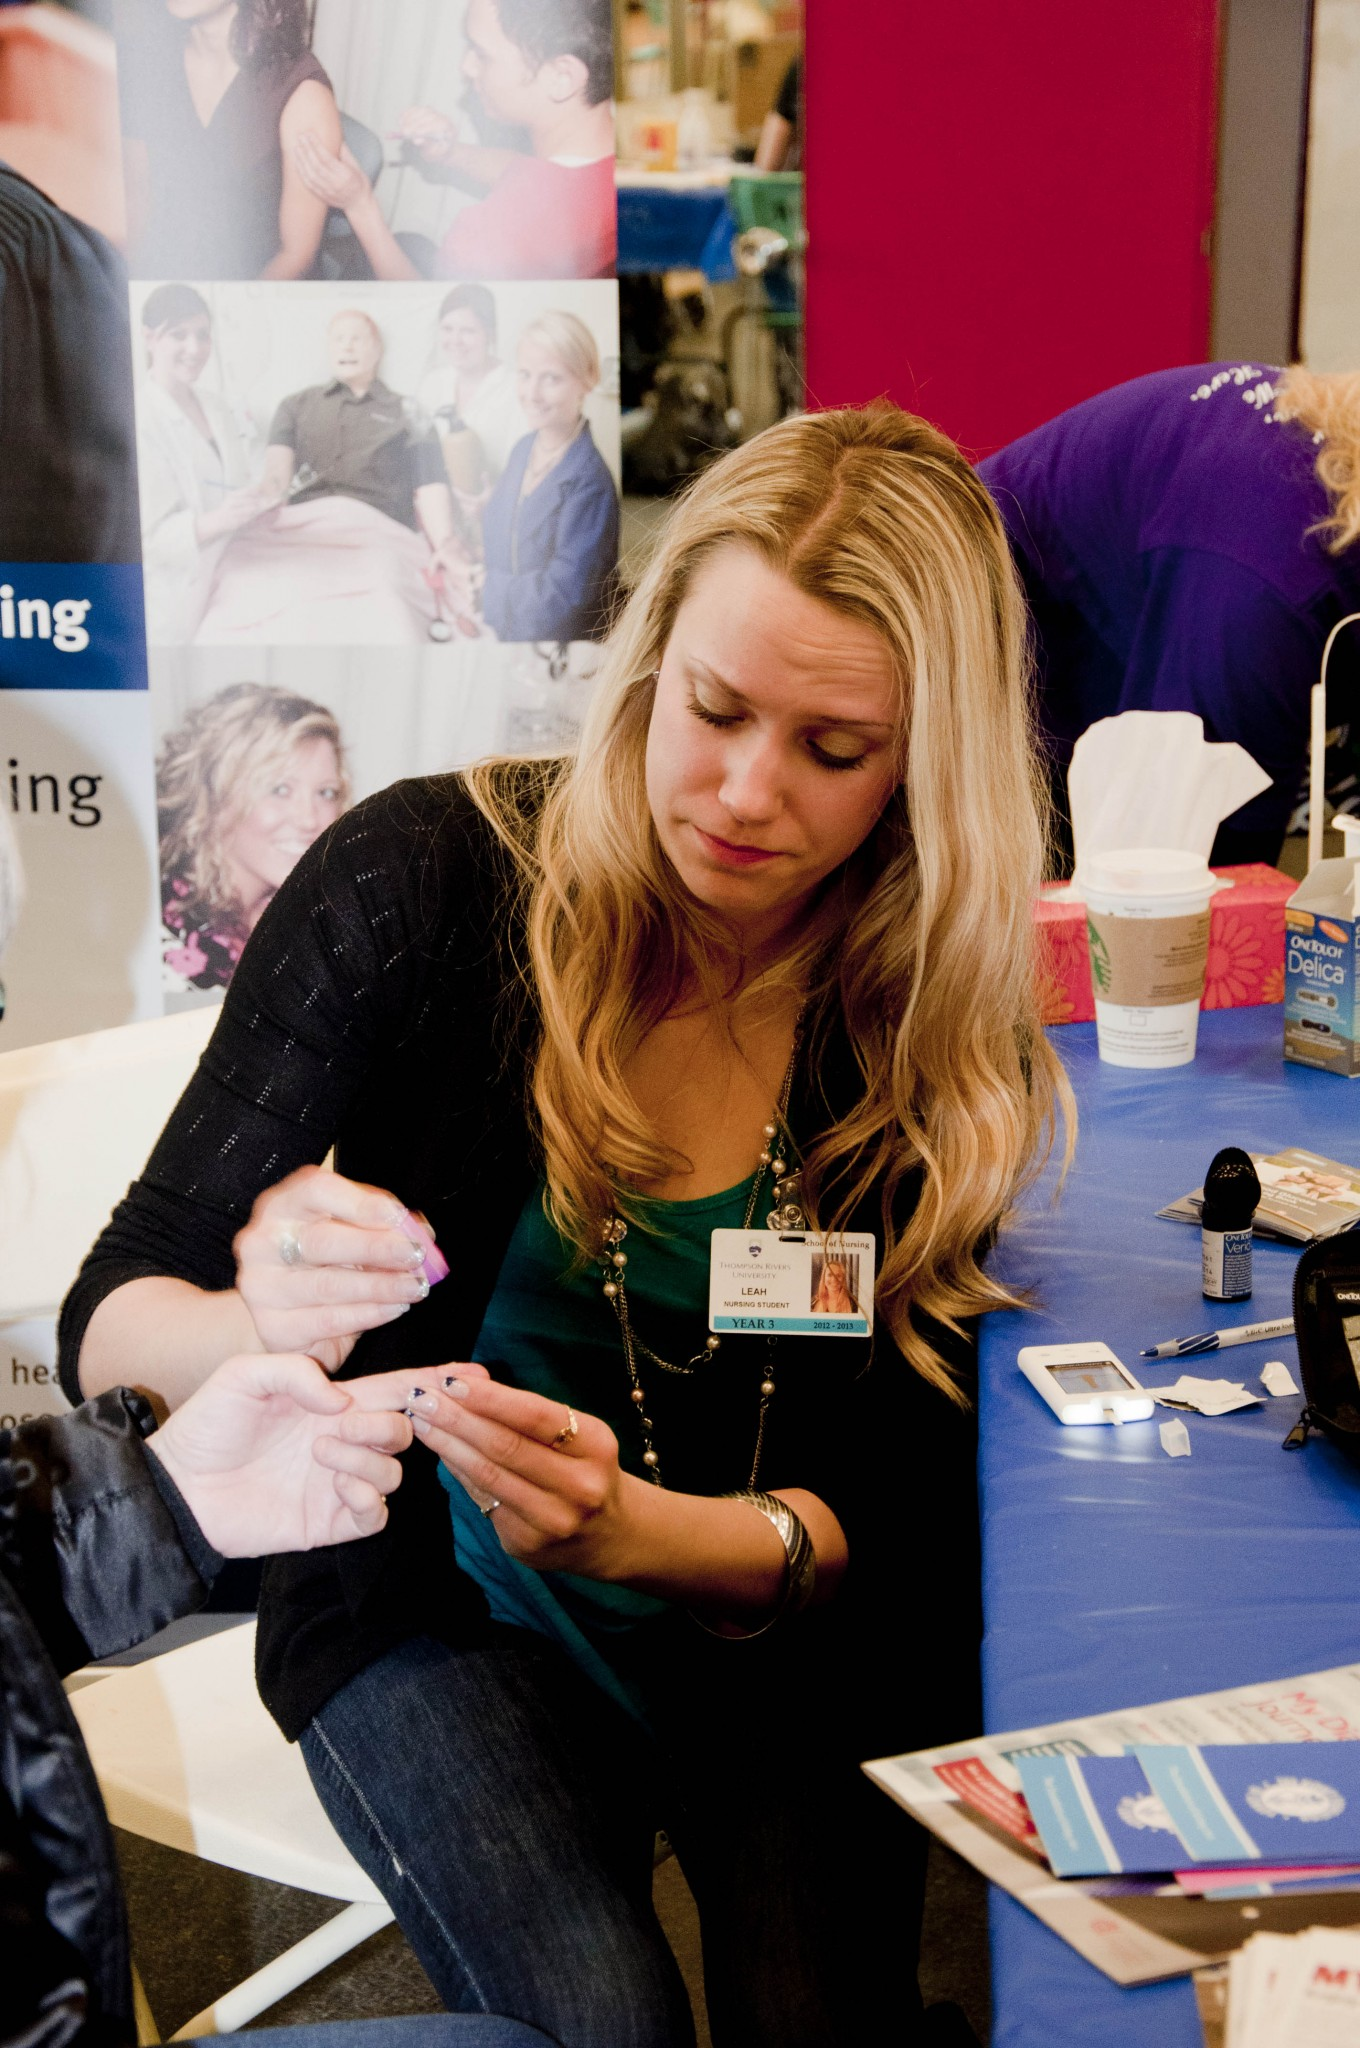 Third-year nursing student Leah Tigchelaar checked blood glucose levels of patients at Sahali Mall on World Kidney Day.- PHOTO BY COURTNEY DICKSON